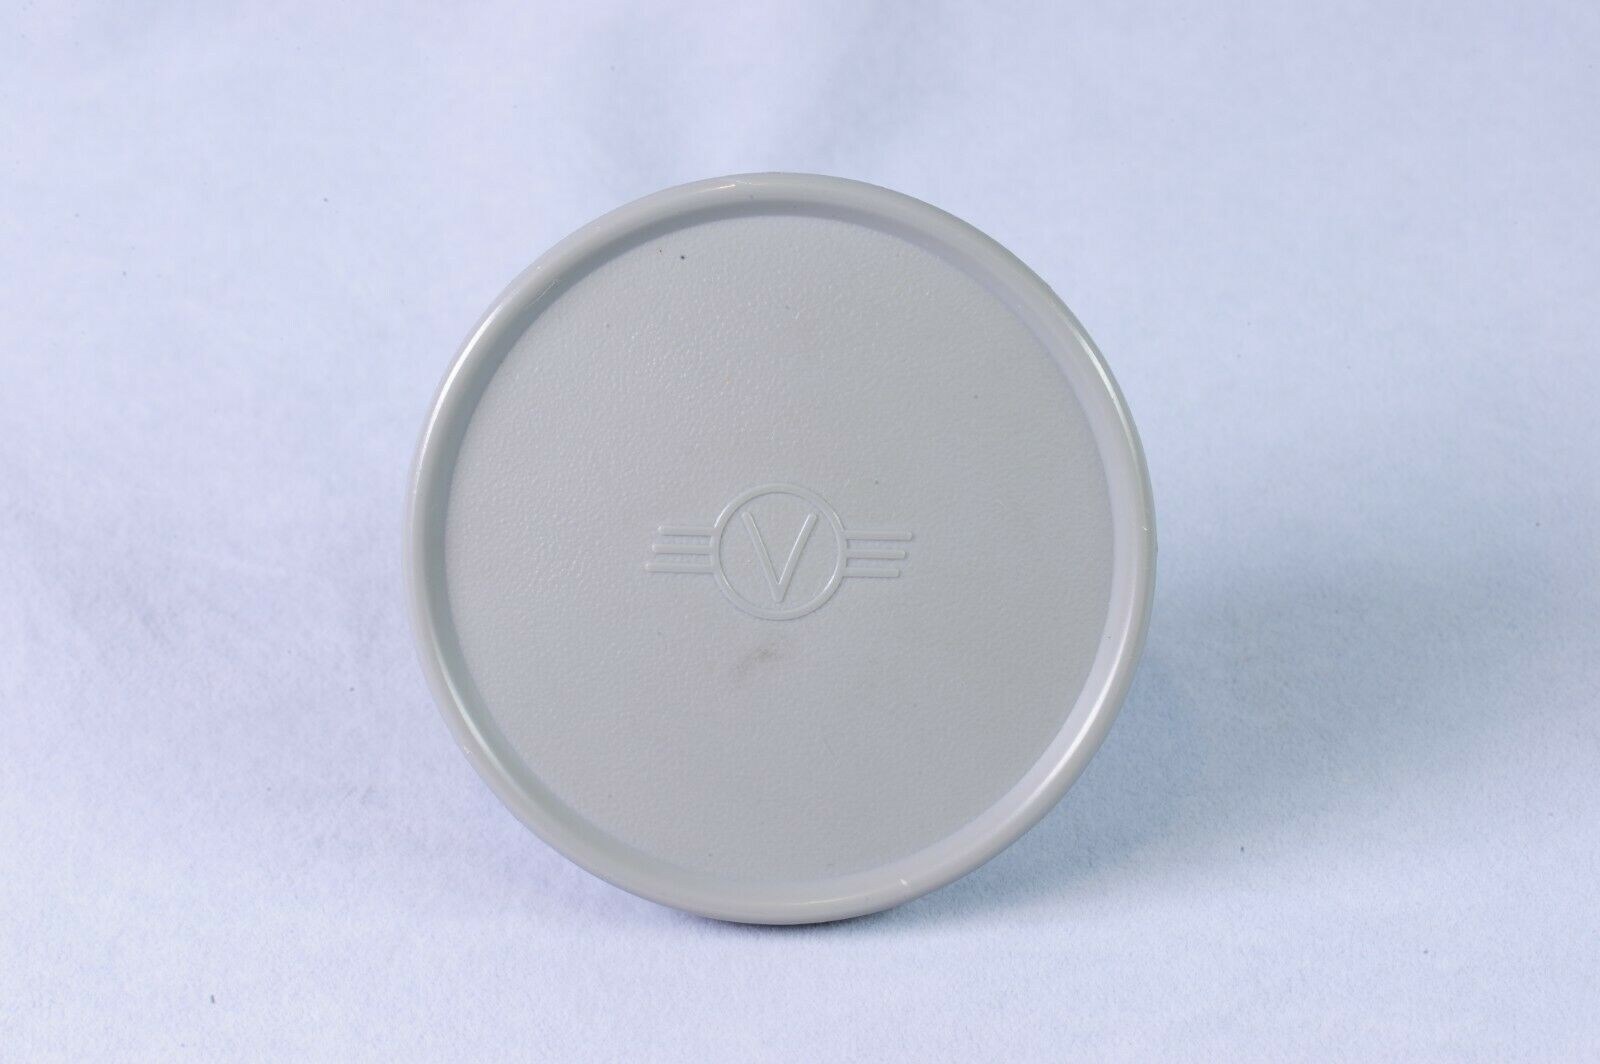 [Genuine] Hasselblad Front Protective cap for camera body (50474) [from Taiwan]